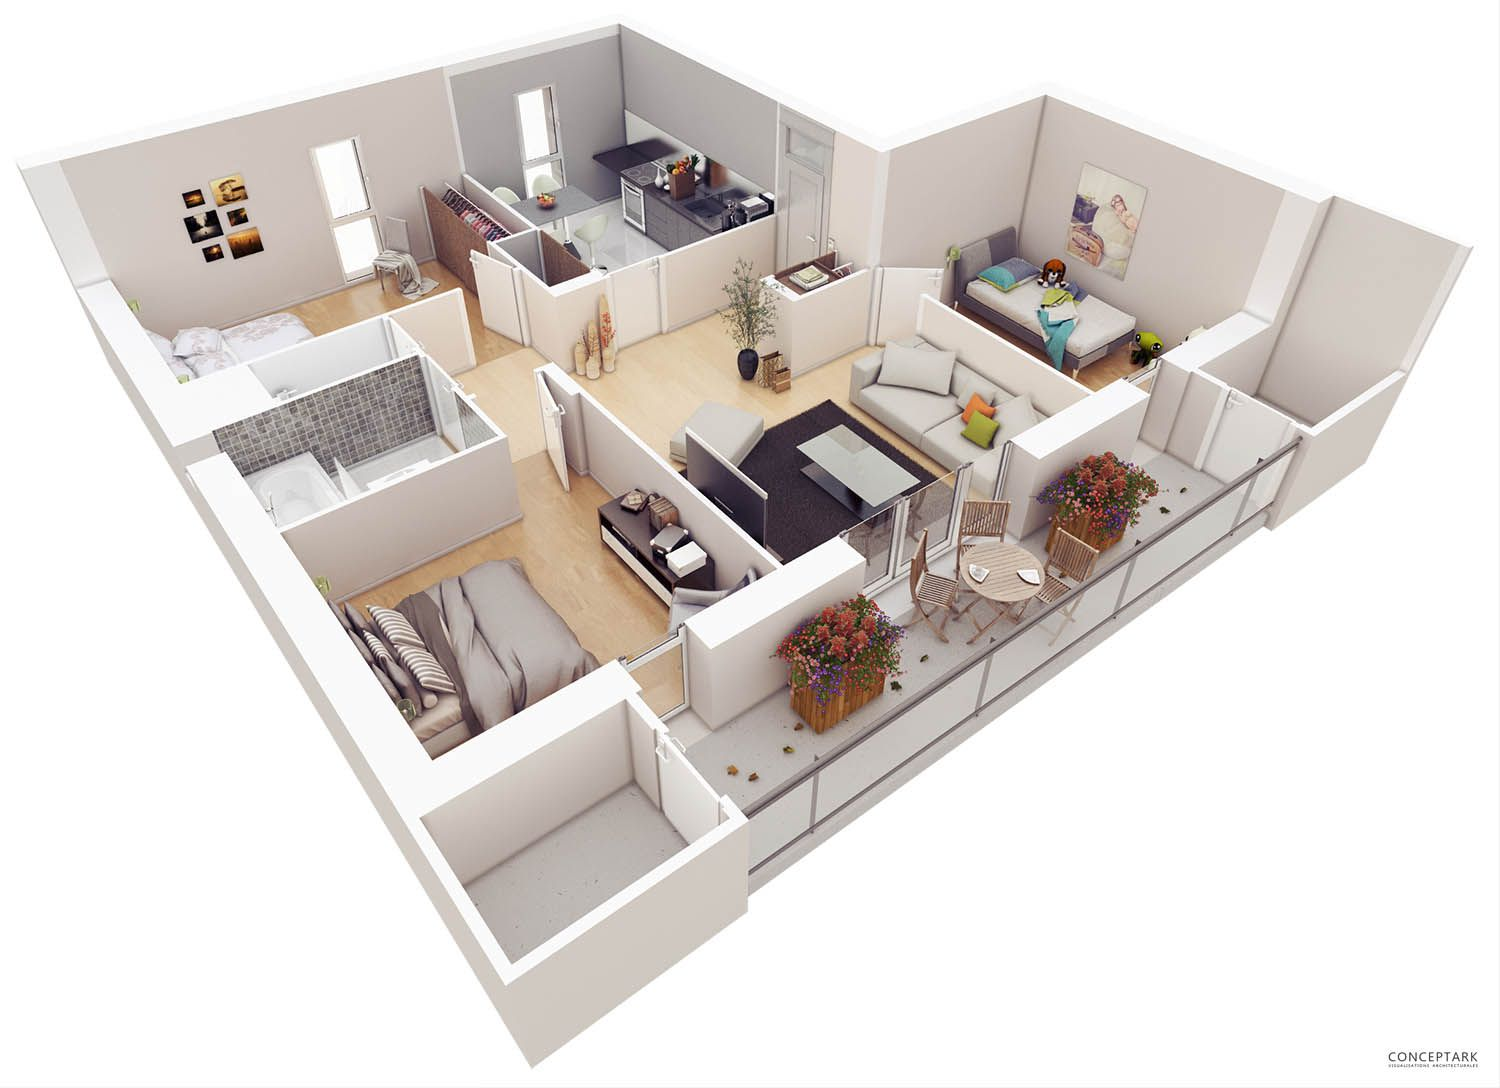 20 Stylish Modern Home 3D Floor Plans - Architecture & Design ...